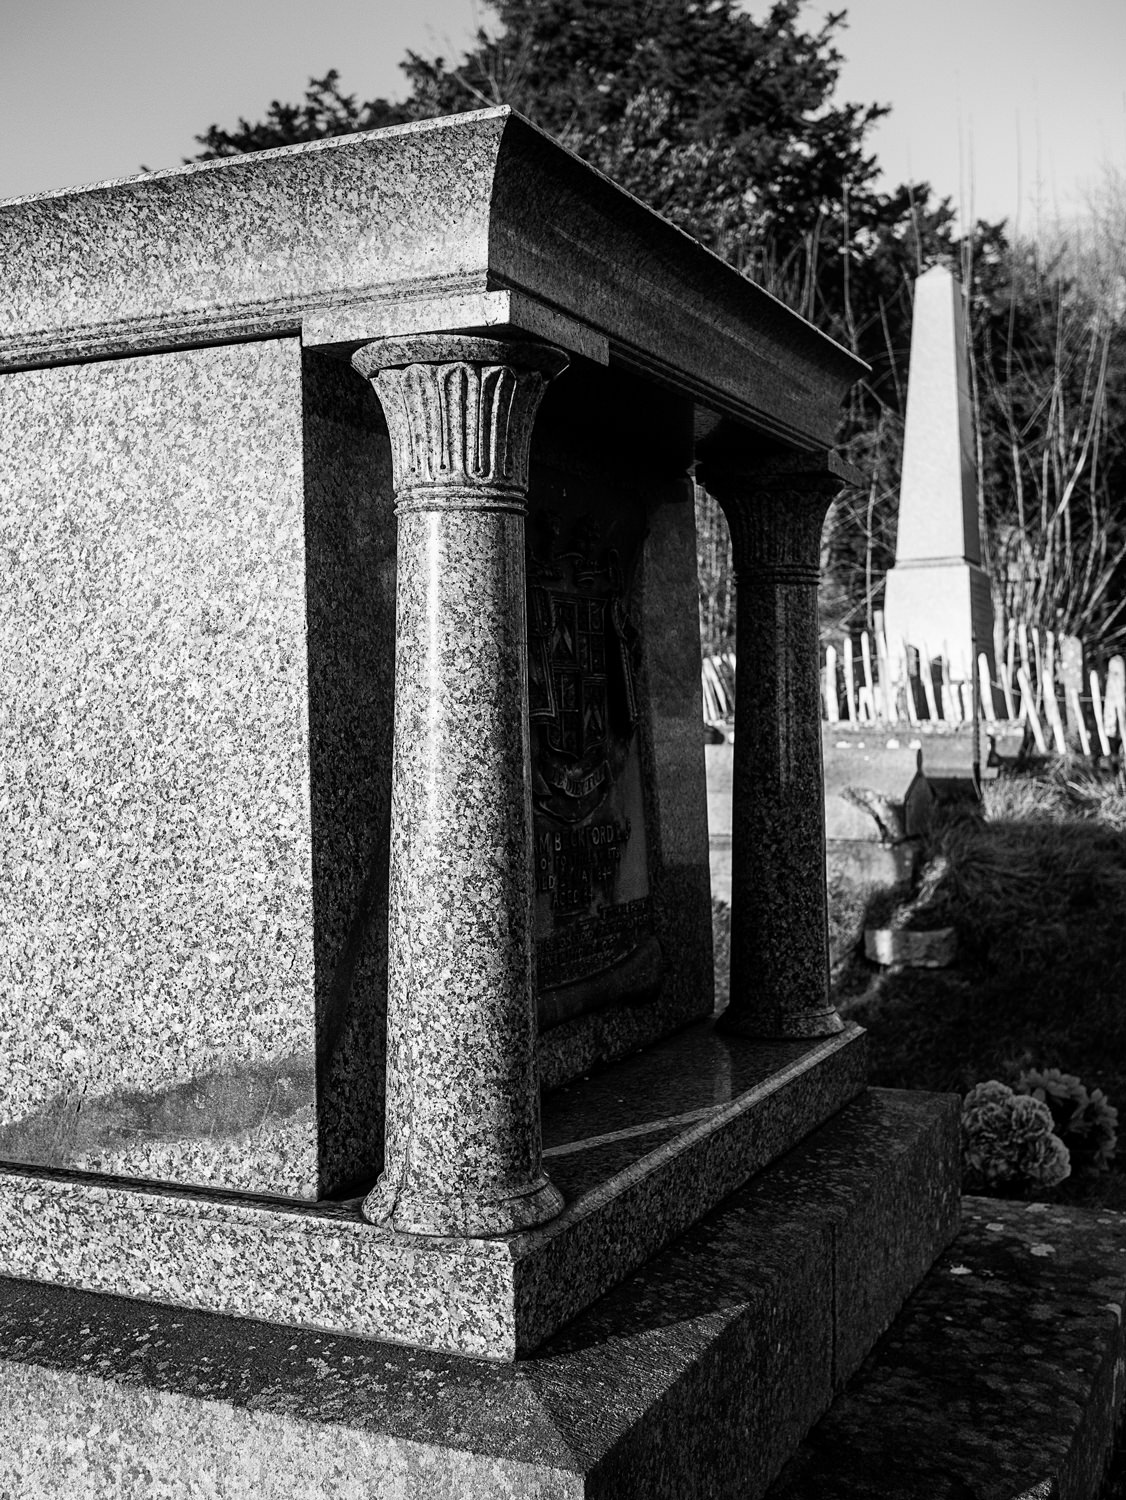 A closeup of one end of Beckford's grave. You can see two of the Egyptianesque pillars in detail. In the background is an obelisk-shaped grave.